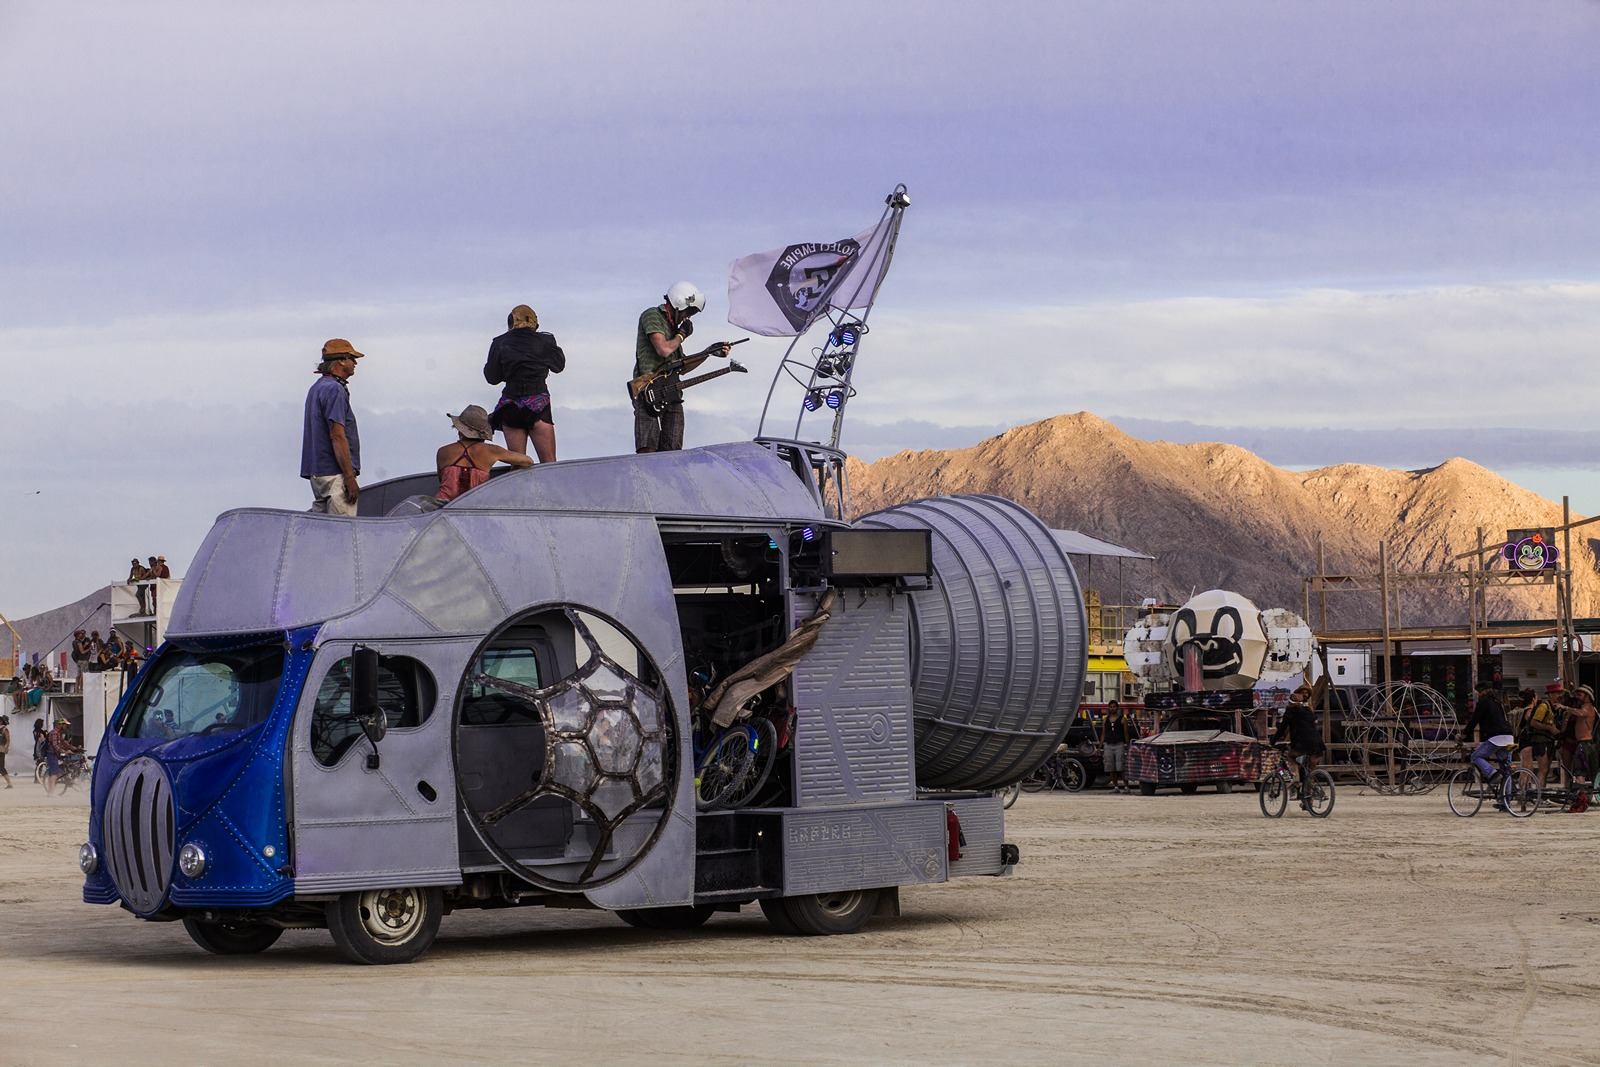 Burning Man - Art car on the playa